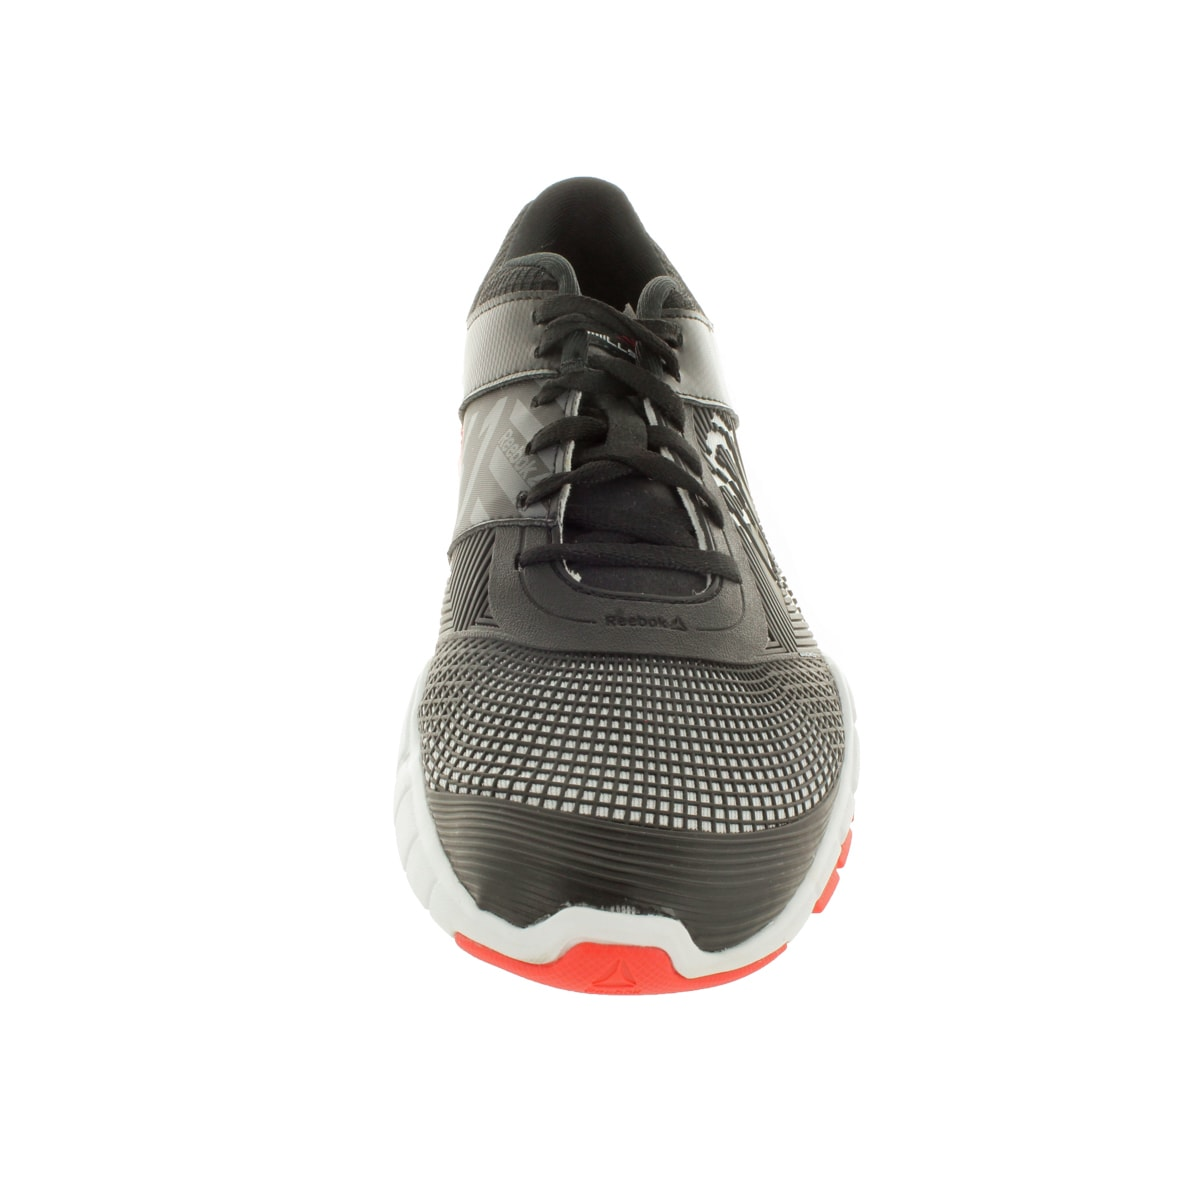 09875304596 Shop Reebok Men s Les Mills BodyCombat White Black Red Mesh Training Shoes  - Free Shipping Today - Overstock - 12115982